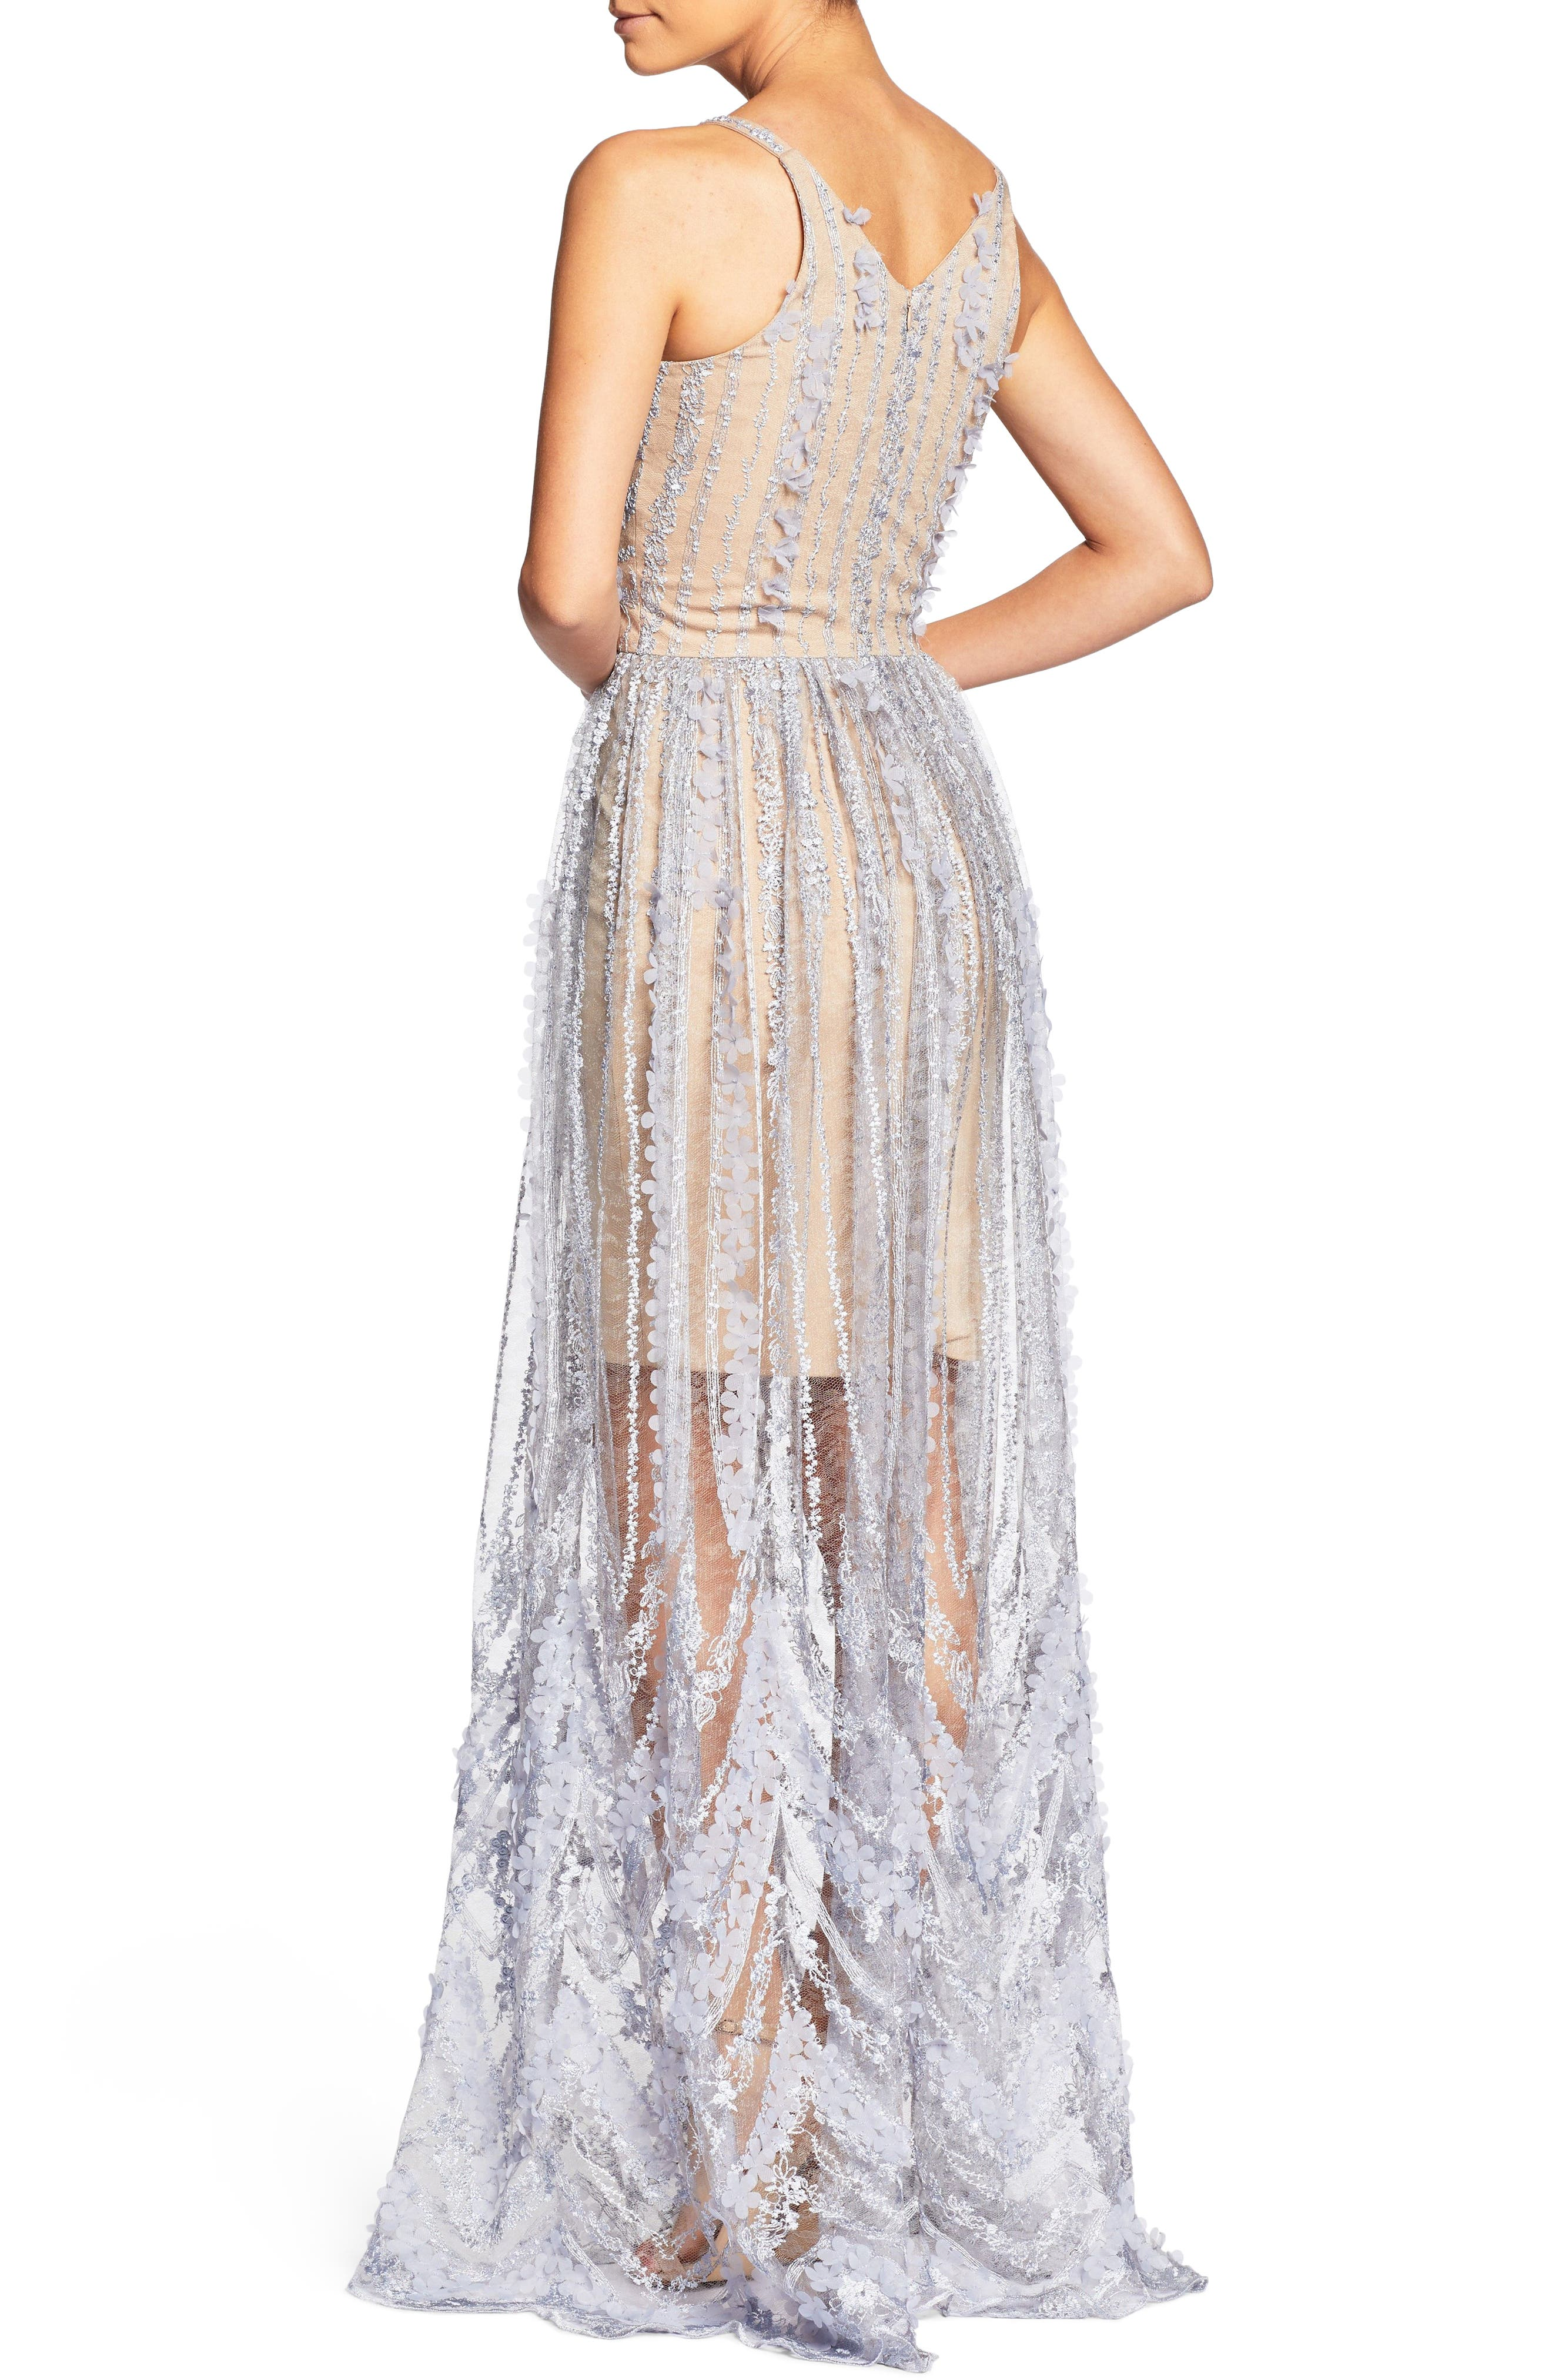 Chelsea Lace A-Line Gown,                             Alternate thumbnail 2, color,                             Mineral Blue/ Nude